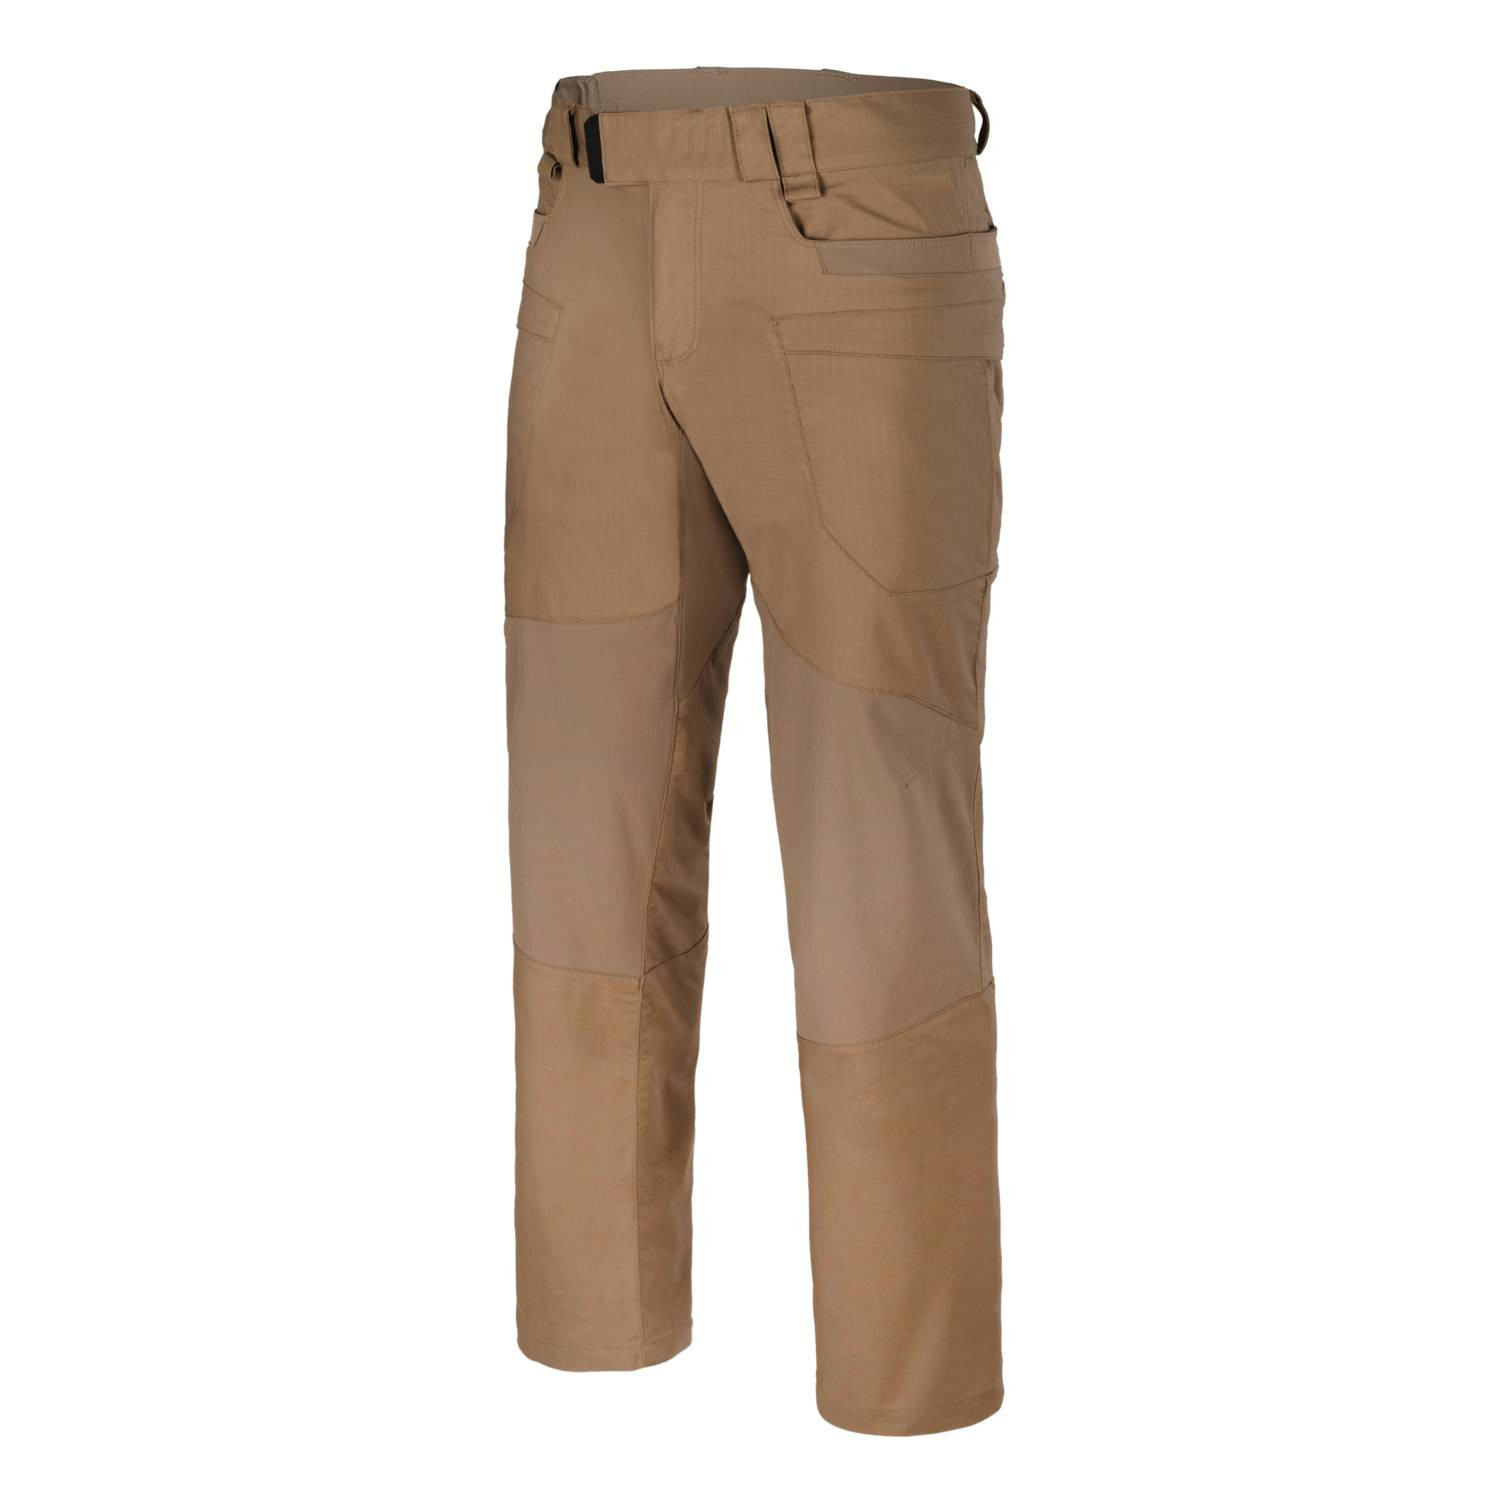 Nohavice HYBRID TACTICAL MUD BROWN